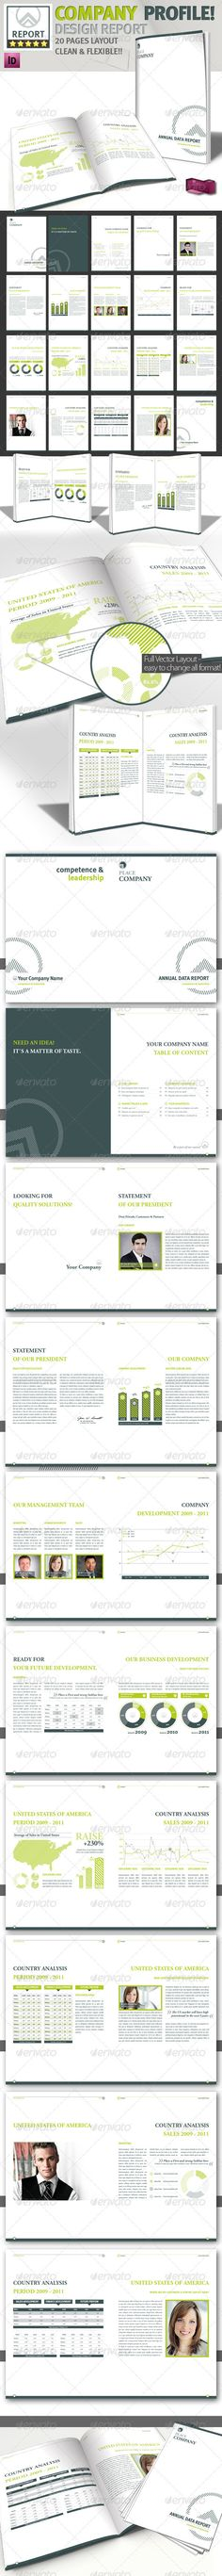 Design Brochure // Magazine Template // A4  #GraphicRiver         Professional Brochure // Magazine Template // DIN A4    Clean, modern & fresh Magazine / Brochure InDesign Template   Size: A4, 8.27×11.69 inches (210×297 mm)   0.125 Inches Bleed – Ready to Print CMYK    100% Vector Easy to edit and change colors from the Swatches Panel   A compatible .IDML- and .INX File for older InDesign Versions is included. Compatible from InDesign CS 5 .5 to CS 3    This magazine matches perfectly with companies or other events or promotional stuff. Really easy to modify to another color scheme. Easy to edit the statistics or vector pictures.   Absolutely ready to print, just copy/paste your text and place your images – do not use placed images because of copyrights! Envato Asset Images were used so please replace with your pictures.   For high qualitiy preview you will find a PDF -document in the zip-file. Fonts Used: Meta Pro (if you do not have these font please choose one that is near similar or please get the license. Font is not included.   Sample images: Envato Asset Library   Have fun with this cool and smooth magazine template and be creative with your content. If help is needed feel free to contact me.   20 Page InDesign Magazine – 20 pages magazine for your needs as a company, agency, etc.     Created: 28March12 GraphicsFilesIncluded: JPGImage #InDesignINDD Layered: No MinimumAdobeCSVersion: CS3 PrintDimensions: 8.2x11.6 Tags: a4 #annualreport #blue #brochure #business #clean #company #corporatedesign #dynamic #elegant #flexible #guide #identity #indesign #magazine #minimalistic #modern #newspaper #product #professional #report #space #statistics #stats #tables #technology #white Indesign Templates, Print Templates, Brochure Template, Flyer Template, Corporate Brochure, Corporate Design, Brochure Design, Magazine Cover Template, Annual Report Design